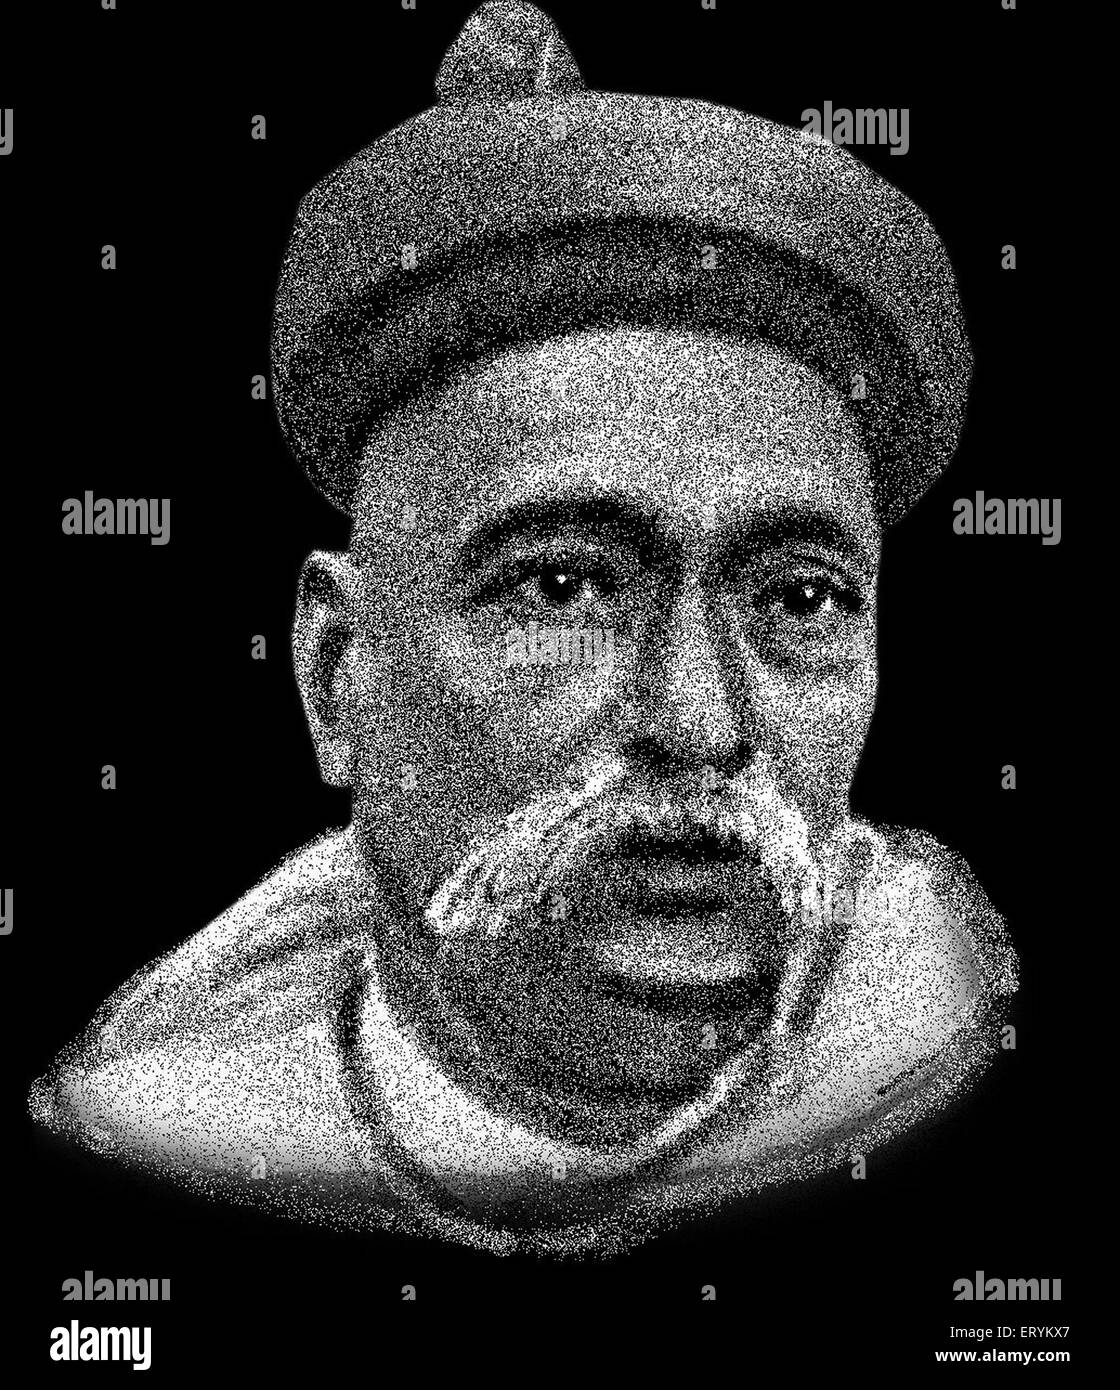 Drawing of Freedom Fighter of India Bal Gangadhar Tilak - Stock Image